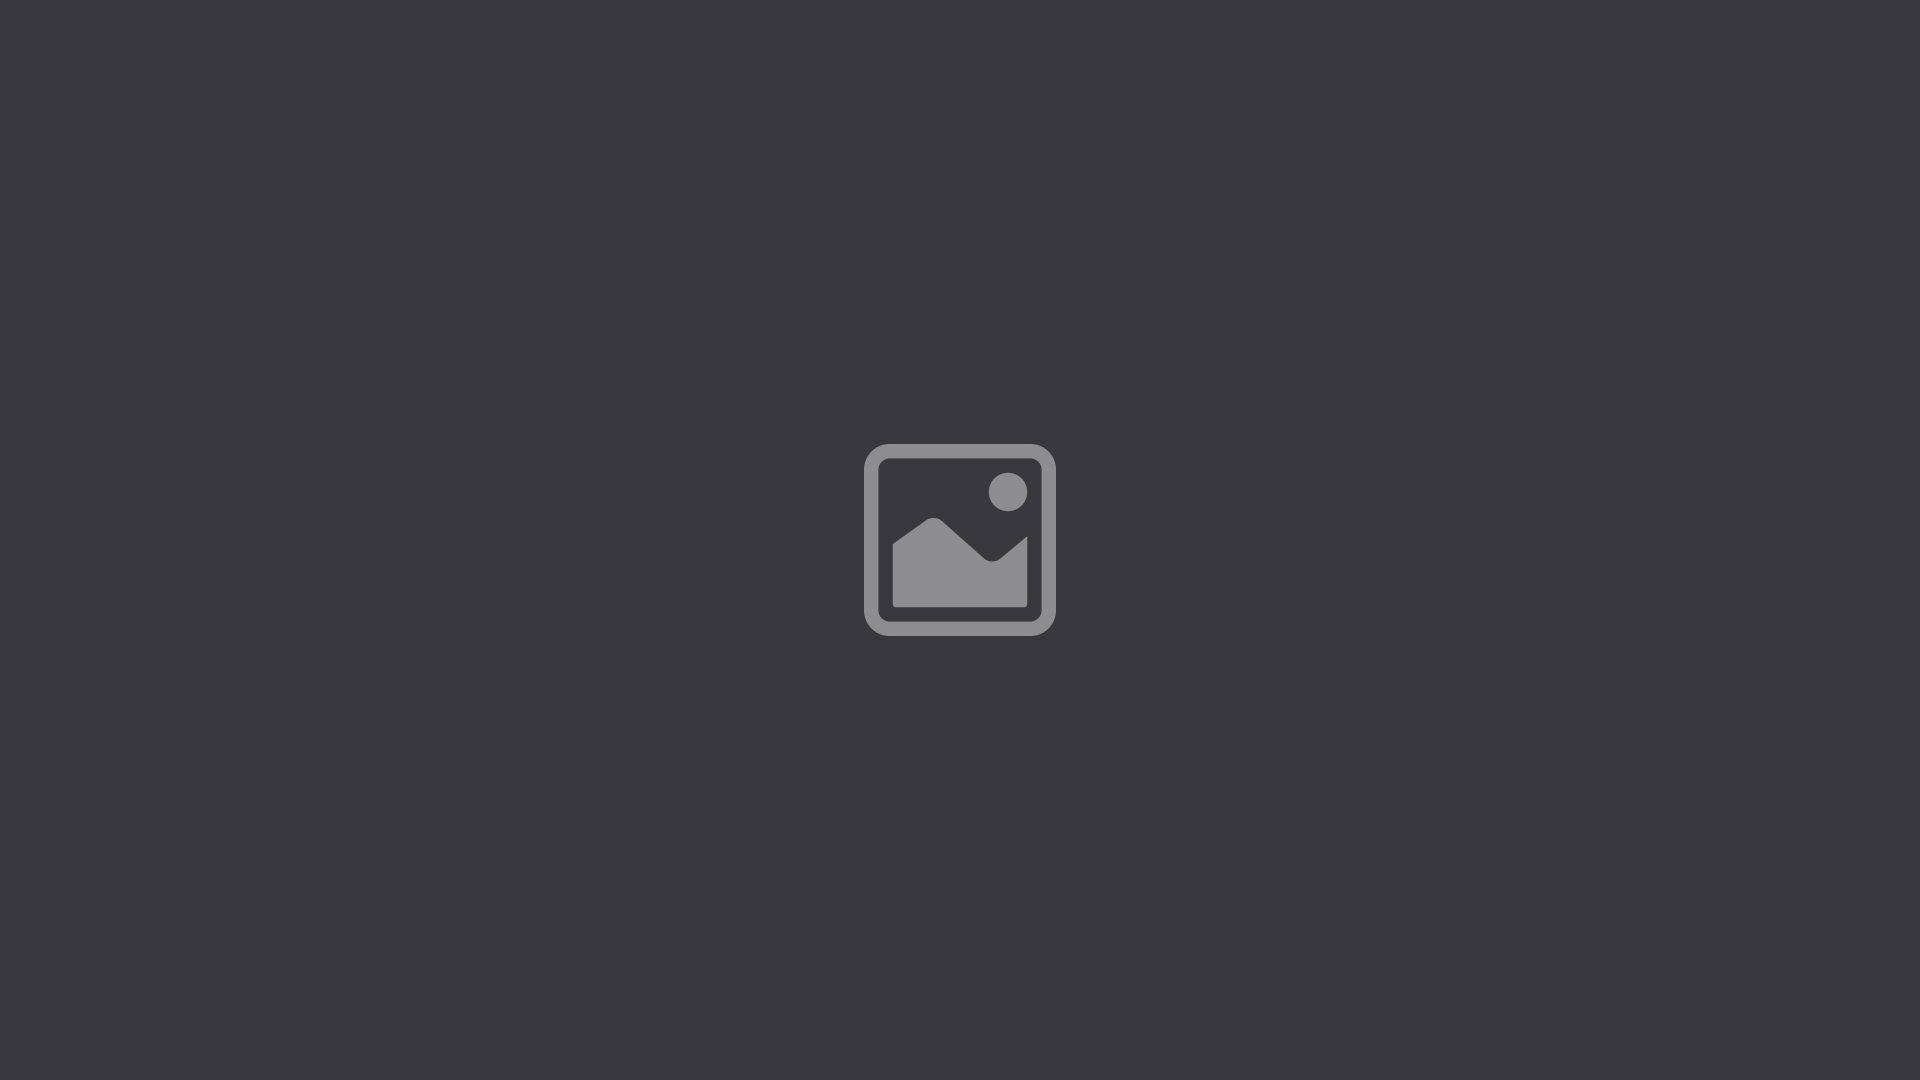 Watch The Comedy Central Animation Channel On Pluto TV